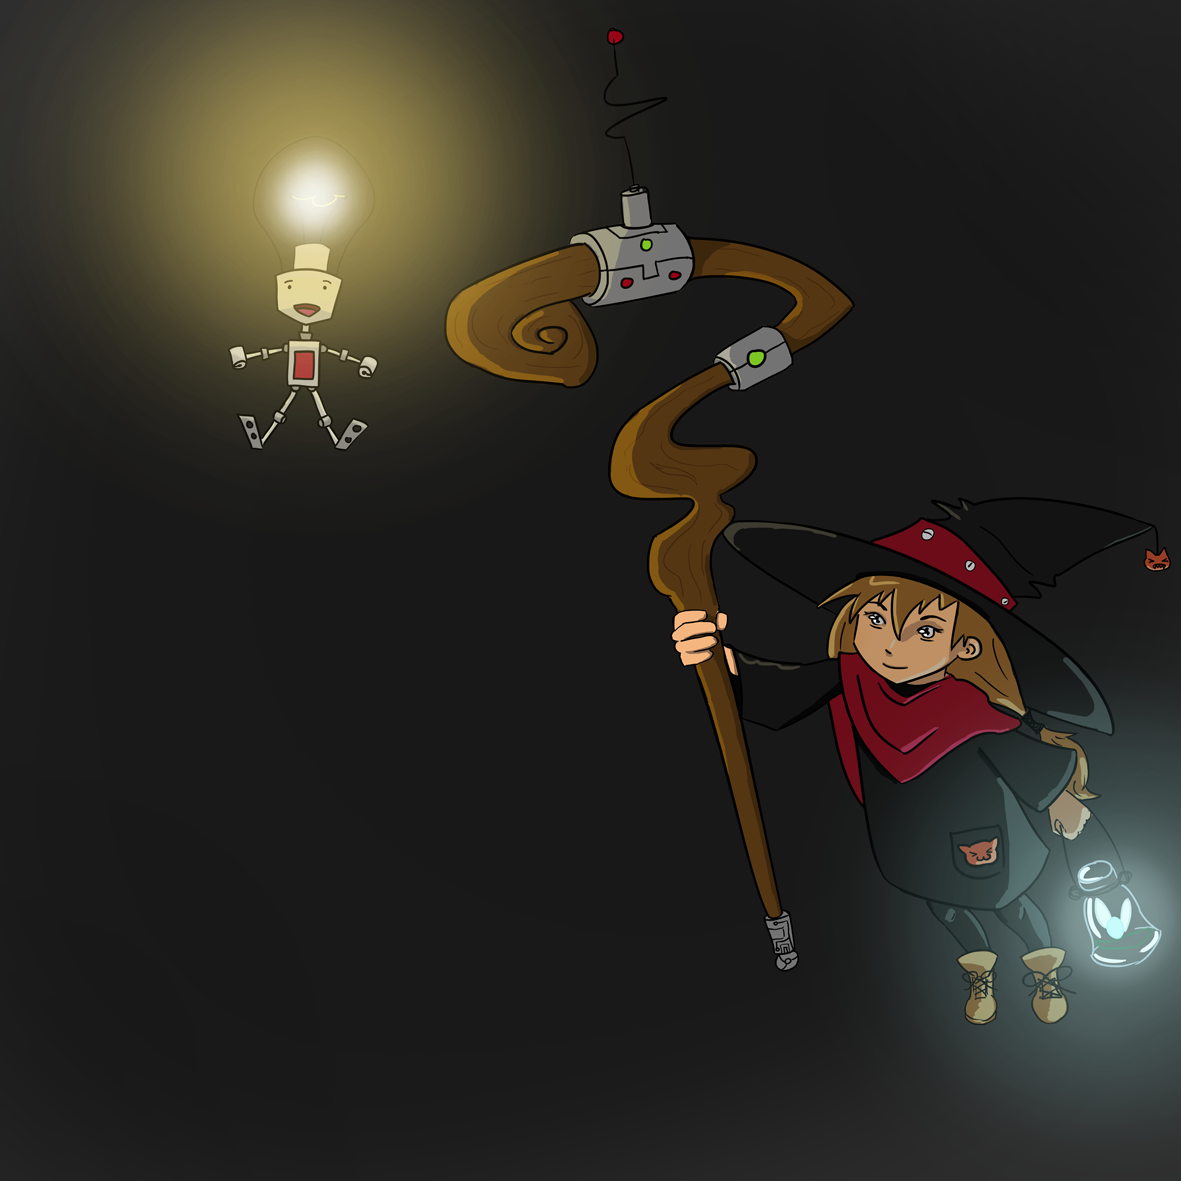 lightbulb-and-witch-2